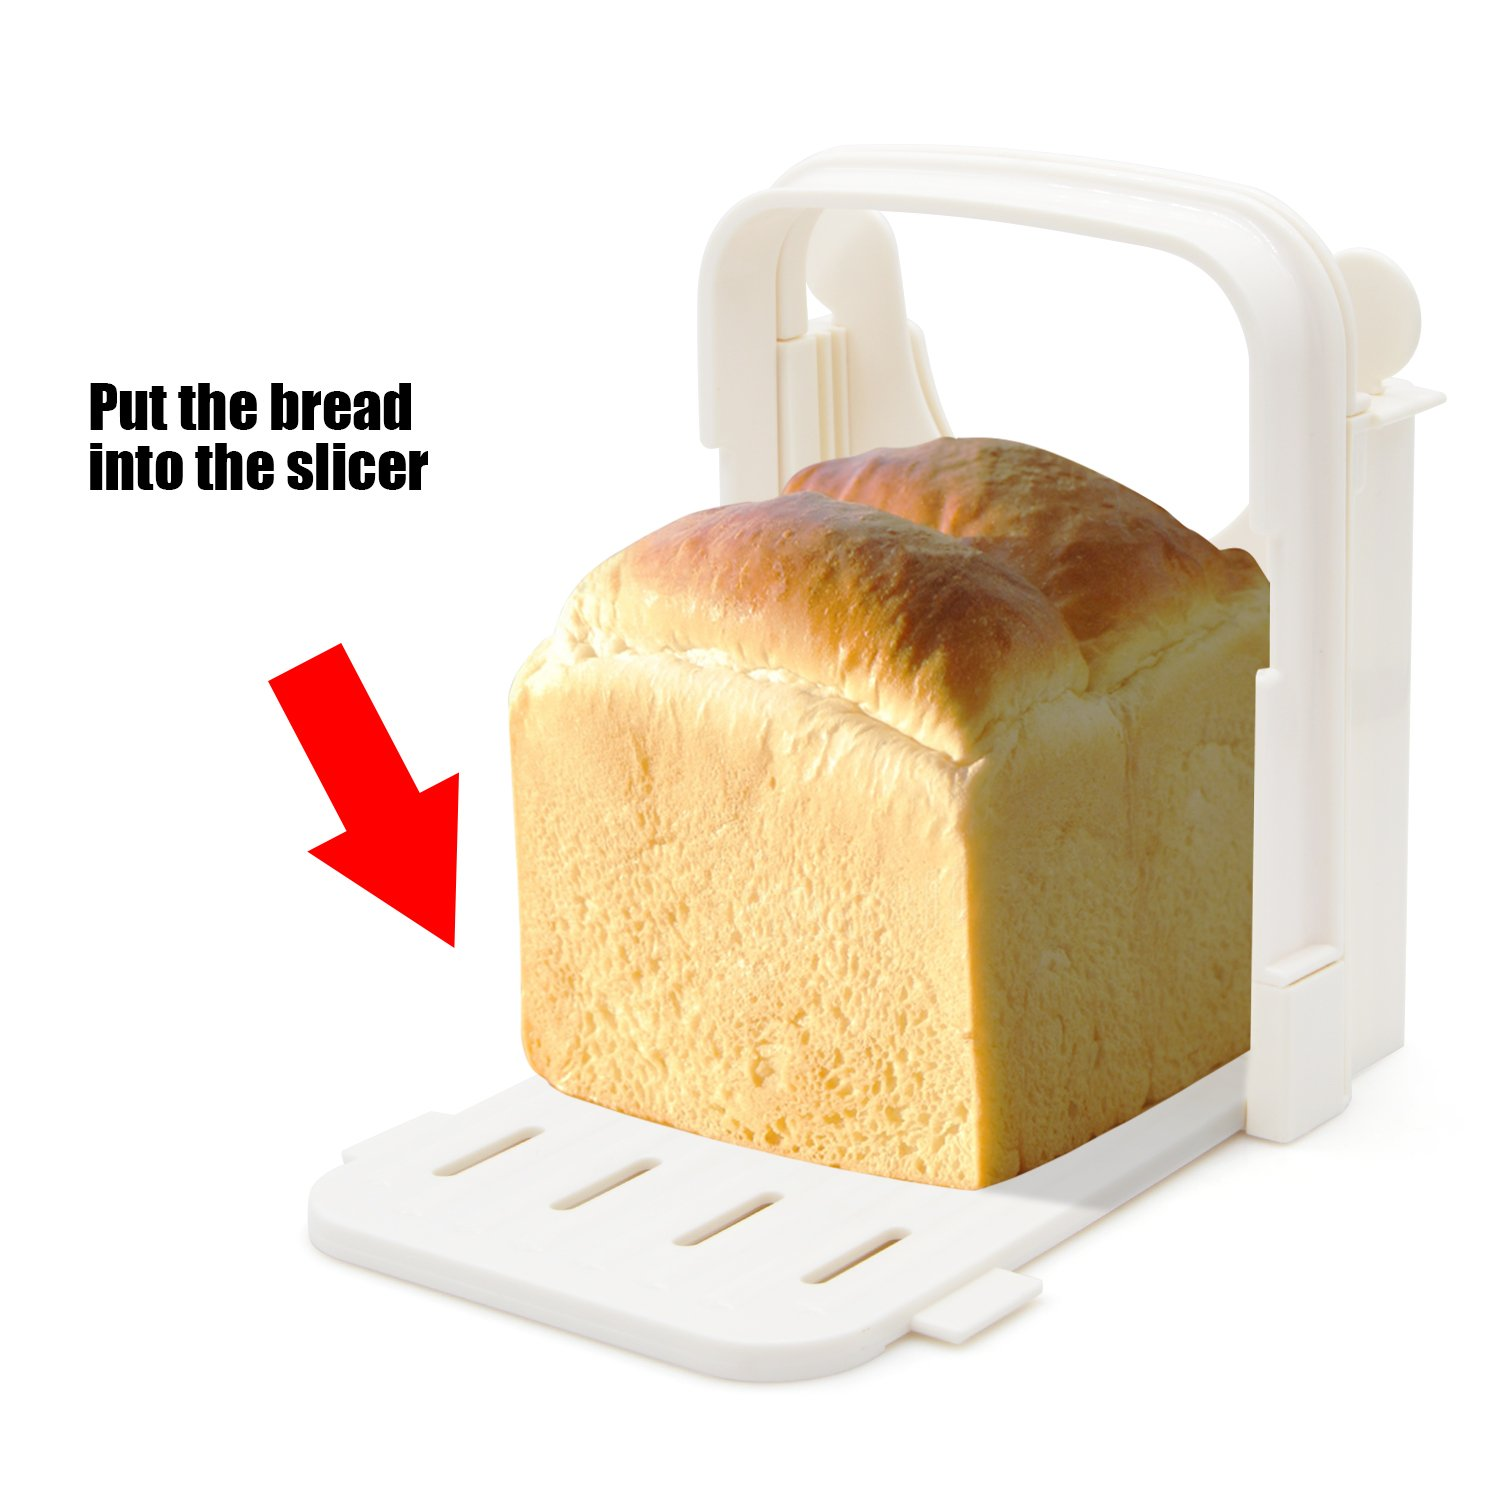 Bread Slicer Toast Slicer Yummy Sam Toast Cutting Guide Bread Toast Bagel Loaf Slicer Cutter Mold Sandwich Maker Toast Slicing Machine Folding and Adjustable with 5 Slice Thicknesses by Yummy Sam (Image #5)